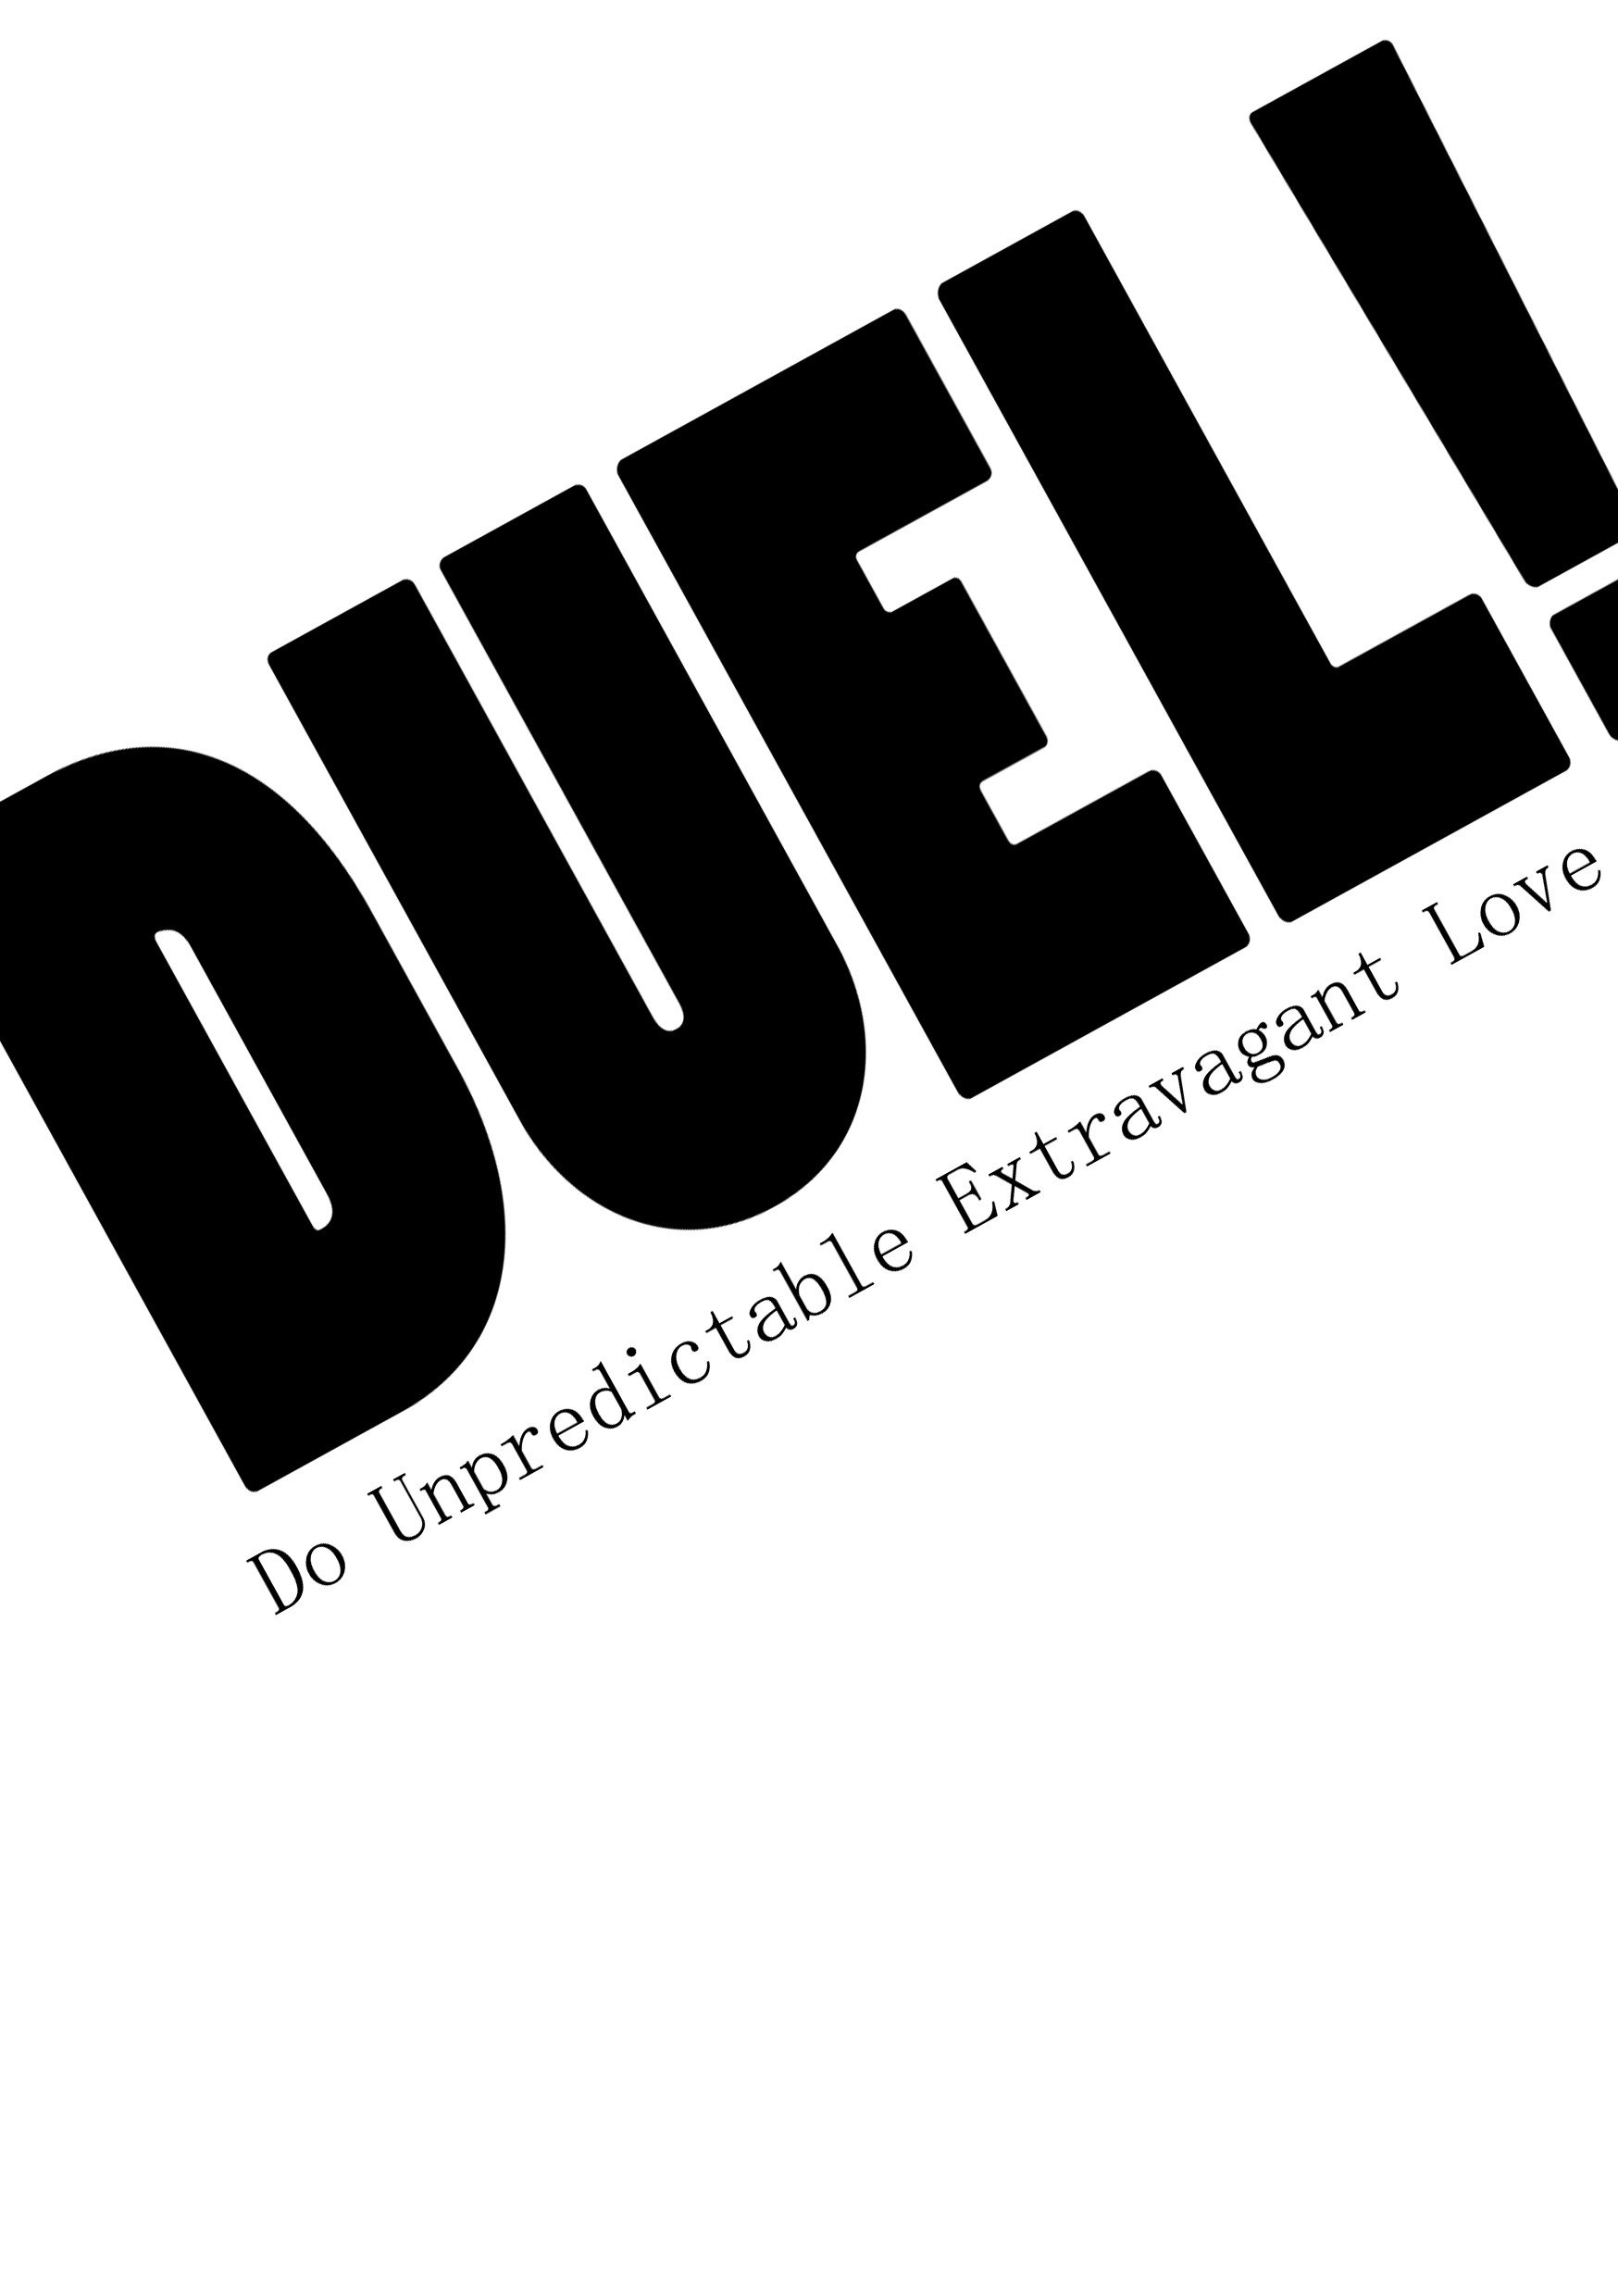 DUEL!-Do Unpredictable Extravagant Love-